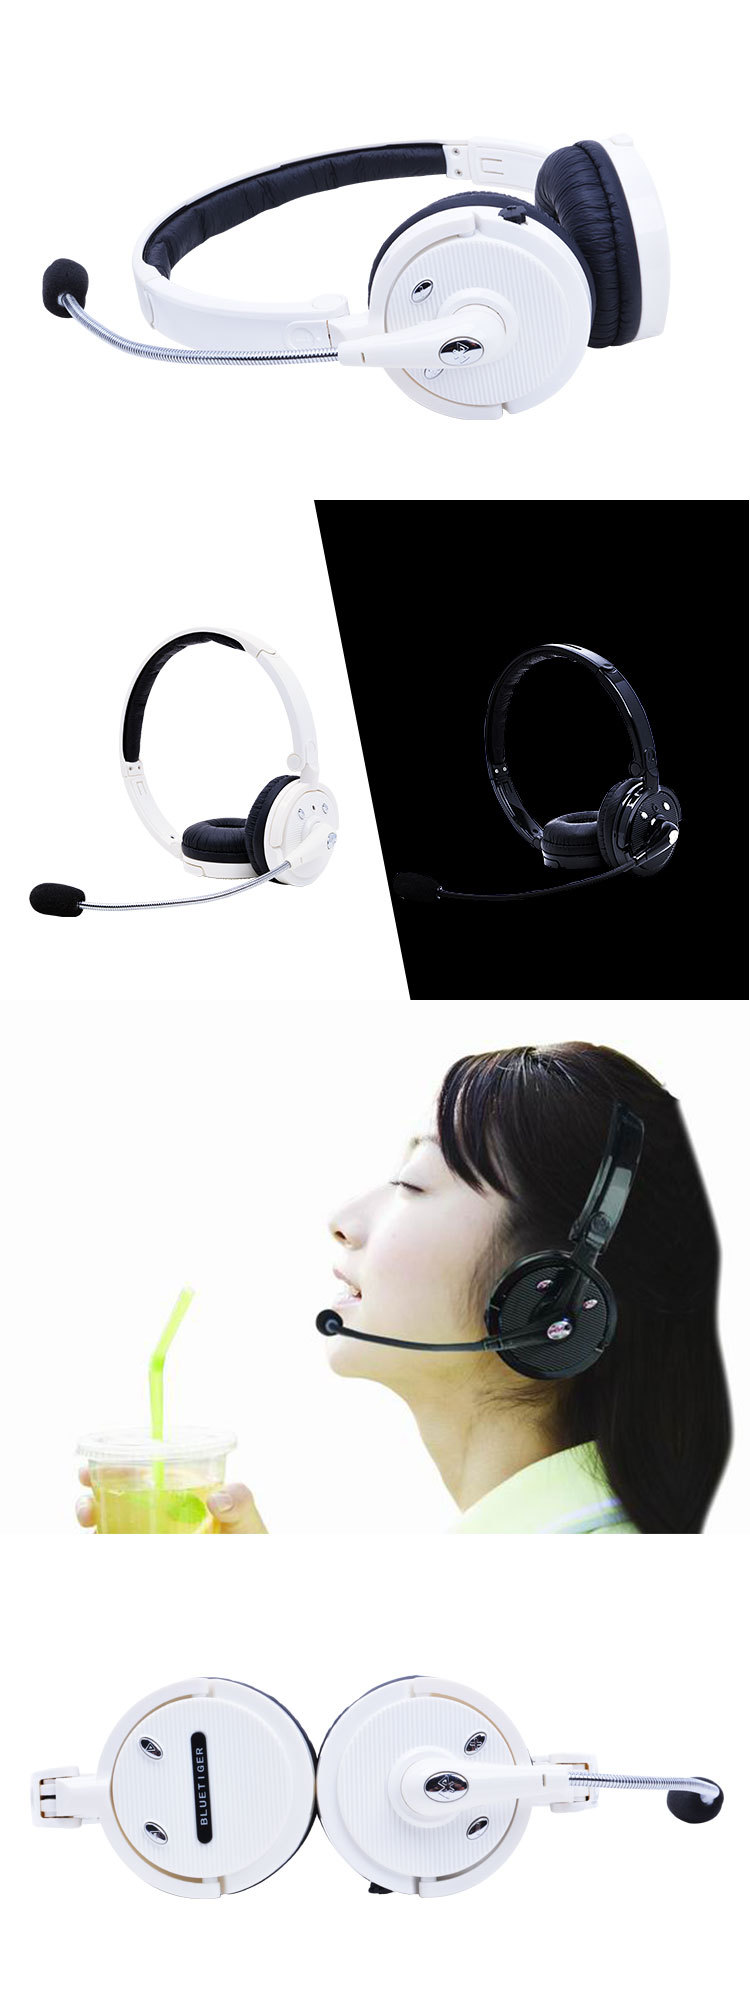 product-Bodio M20C Dual Ear headset easy connect bundle foldable bluetooth headset-Bodio Electronic-